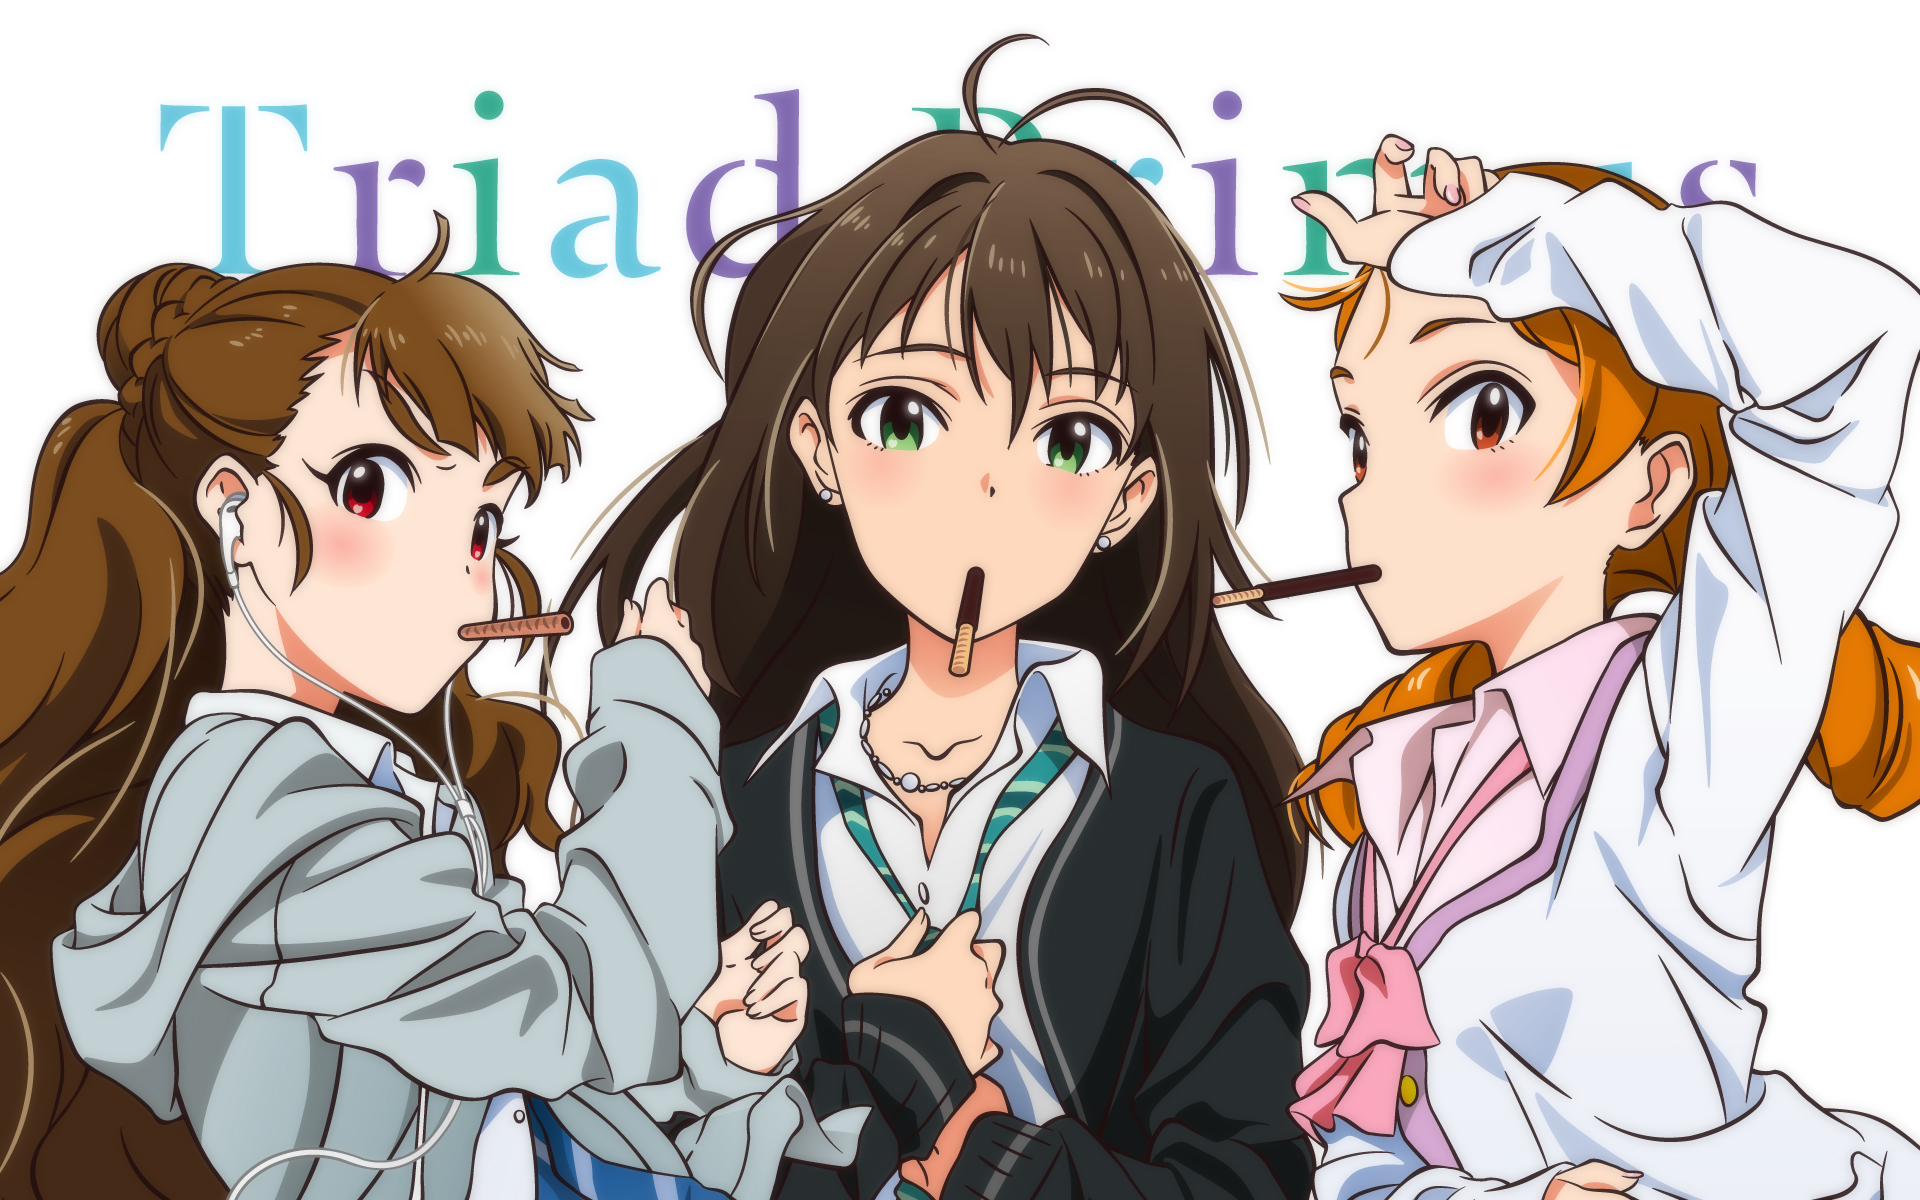 Amazing IDOLM@STER Cinderella Girls Pictures & Backgrounds